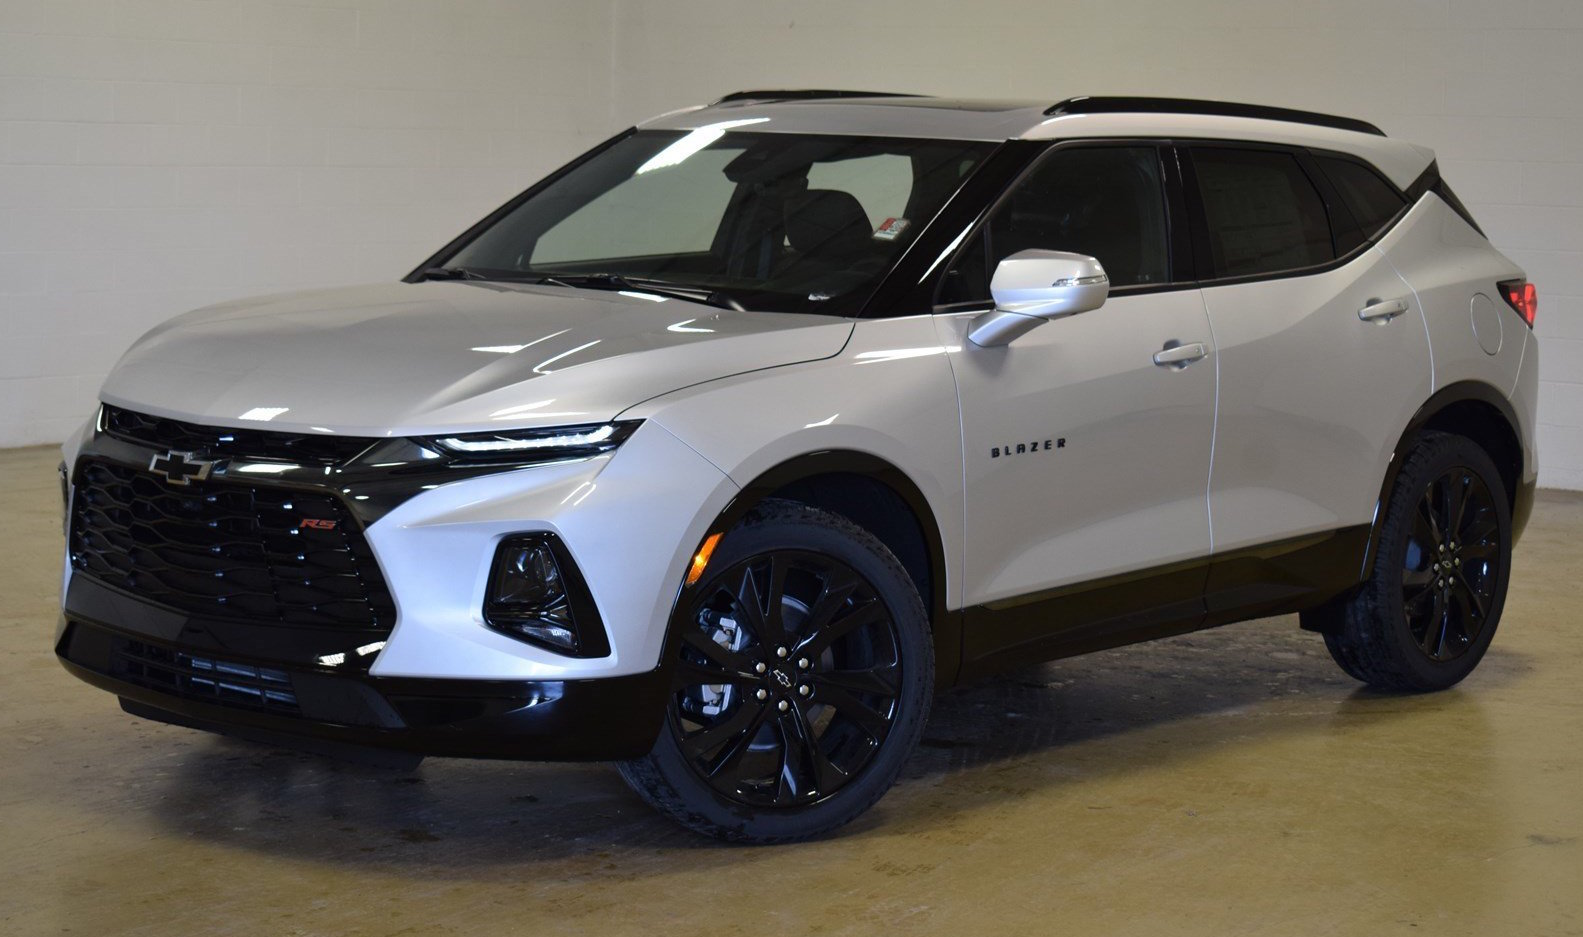 CHEVROLET BLAZER Rs awd 3.6l 305hp bva9 all new 19 2020